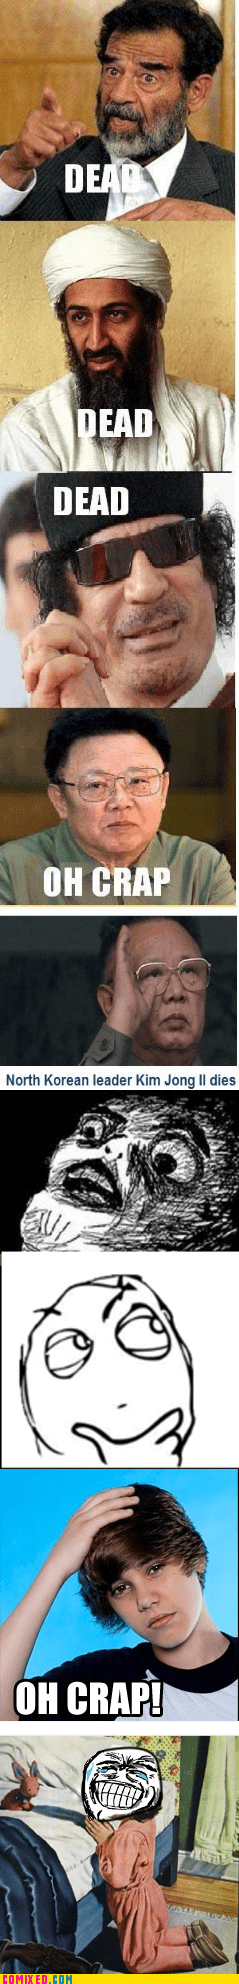 best of week,dead,justin bieber,Kim Jong-Il,oh crap,the internets